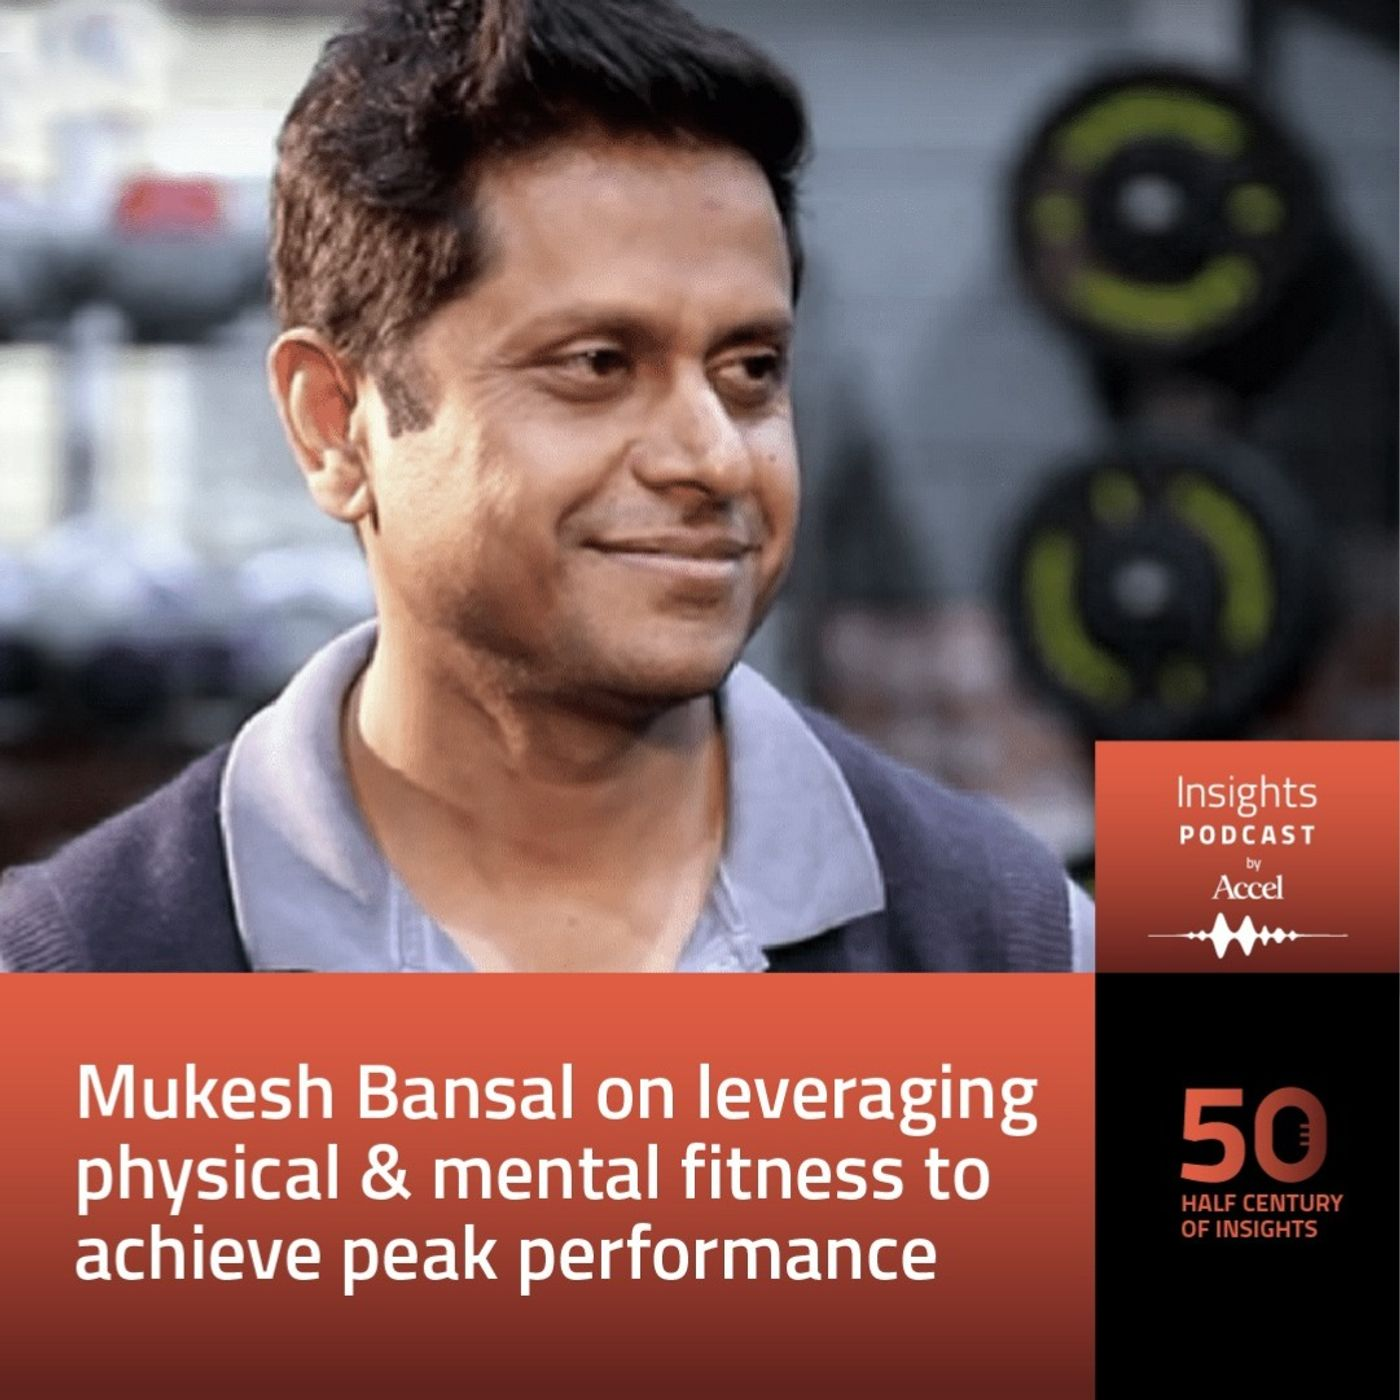 INSIGHTS #50 - Mukesh Bansal on leveraging physical & mental fitness to achieve peak performance